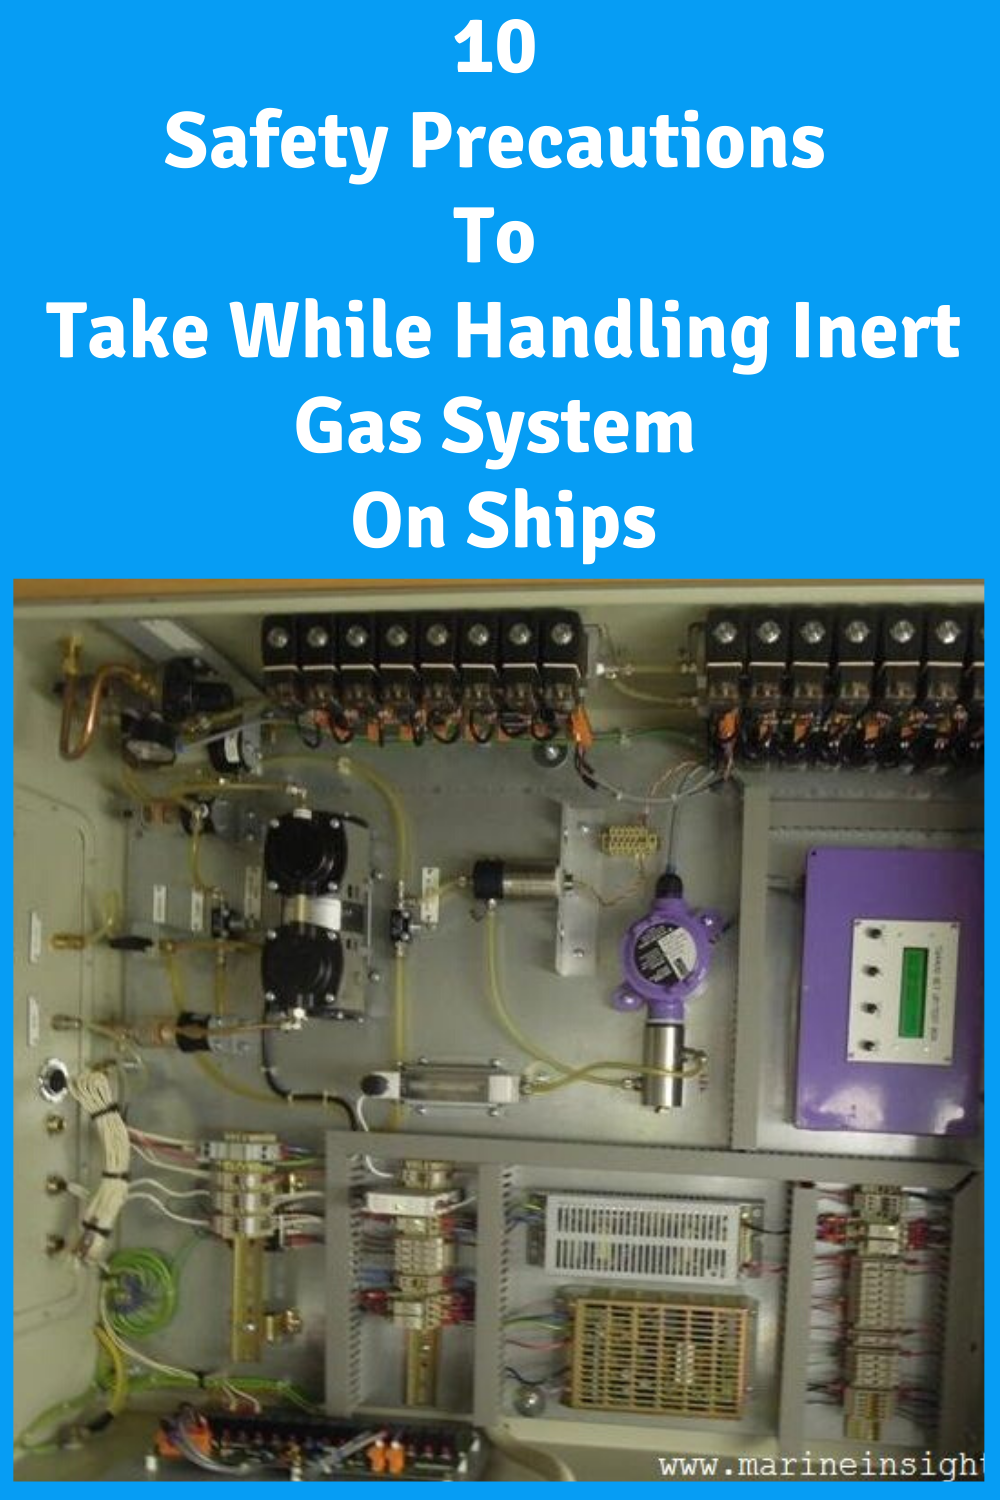 10 Safety Precautions To Take While Handling Inert Gas